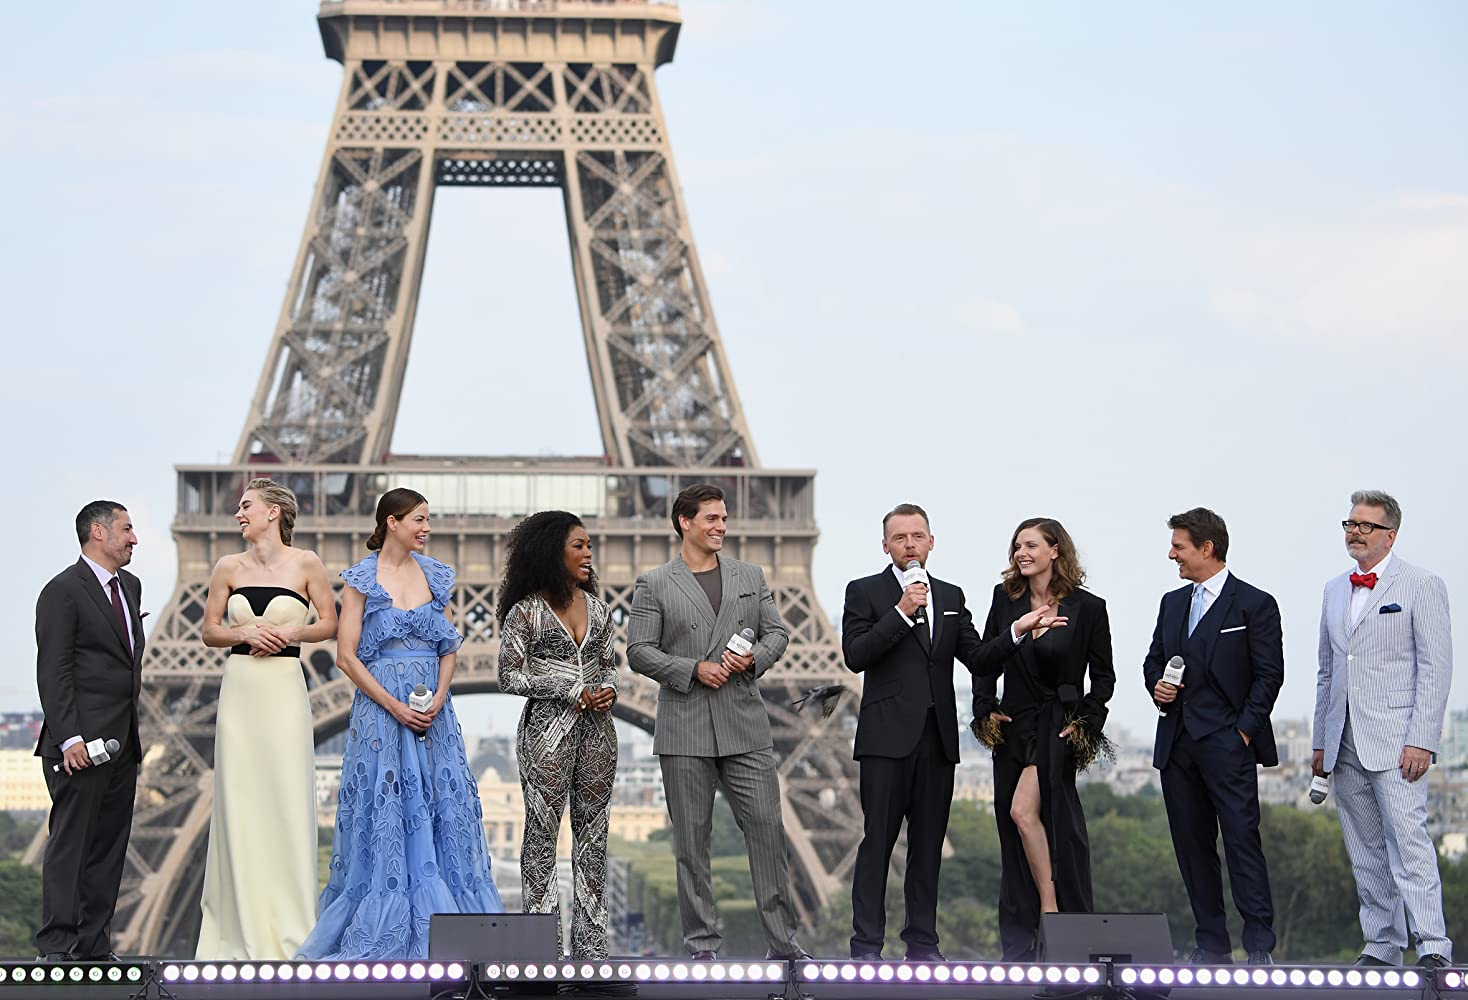 Tom Cruise, Angela Bassett, Christopher McQuarrie, Henry Cavill, Rebecca Ferguson, Jake Myers, Simon Pegg, Michelle Monaghan, and Vanessa Kirby at an event for Mission: Impossible - Fallout (2018)